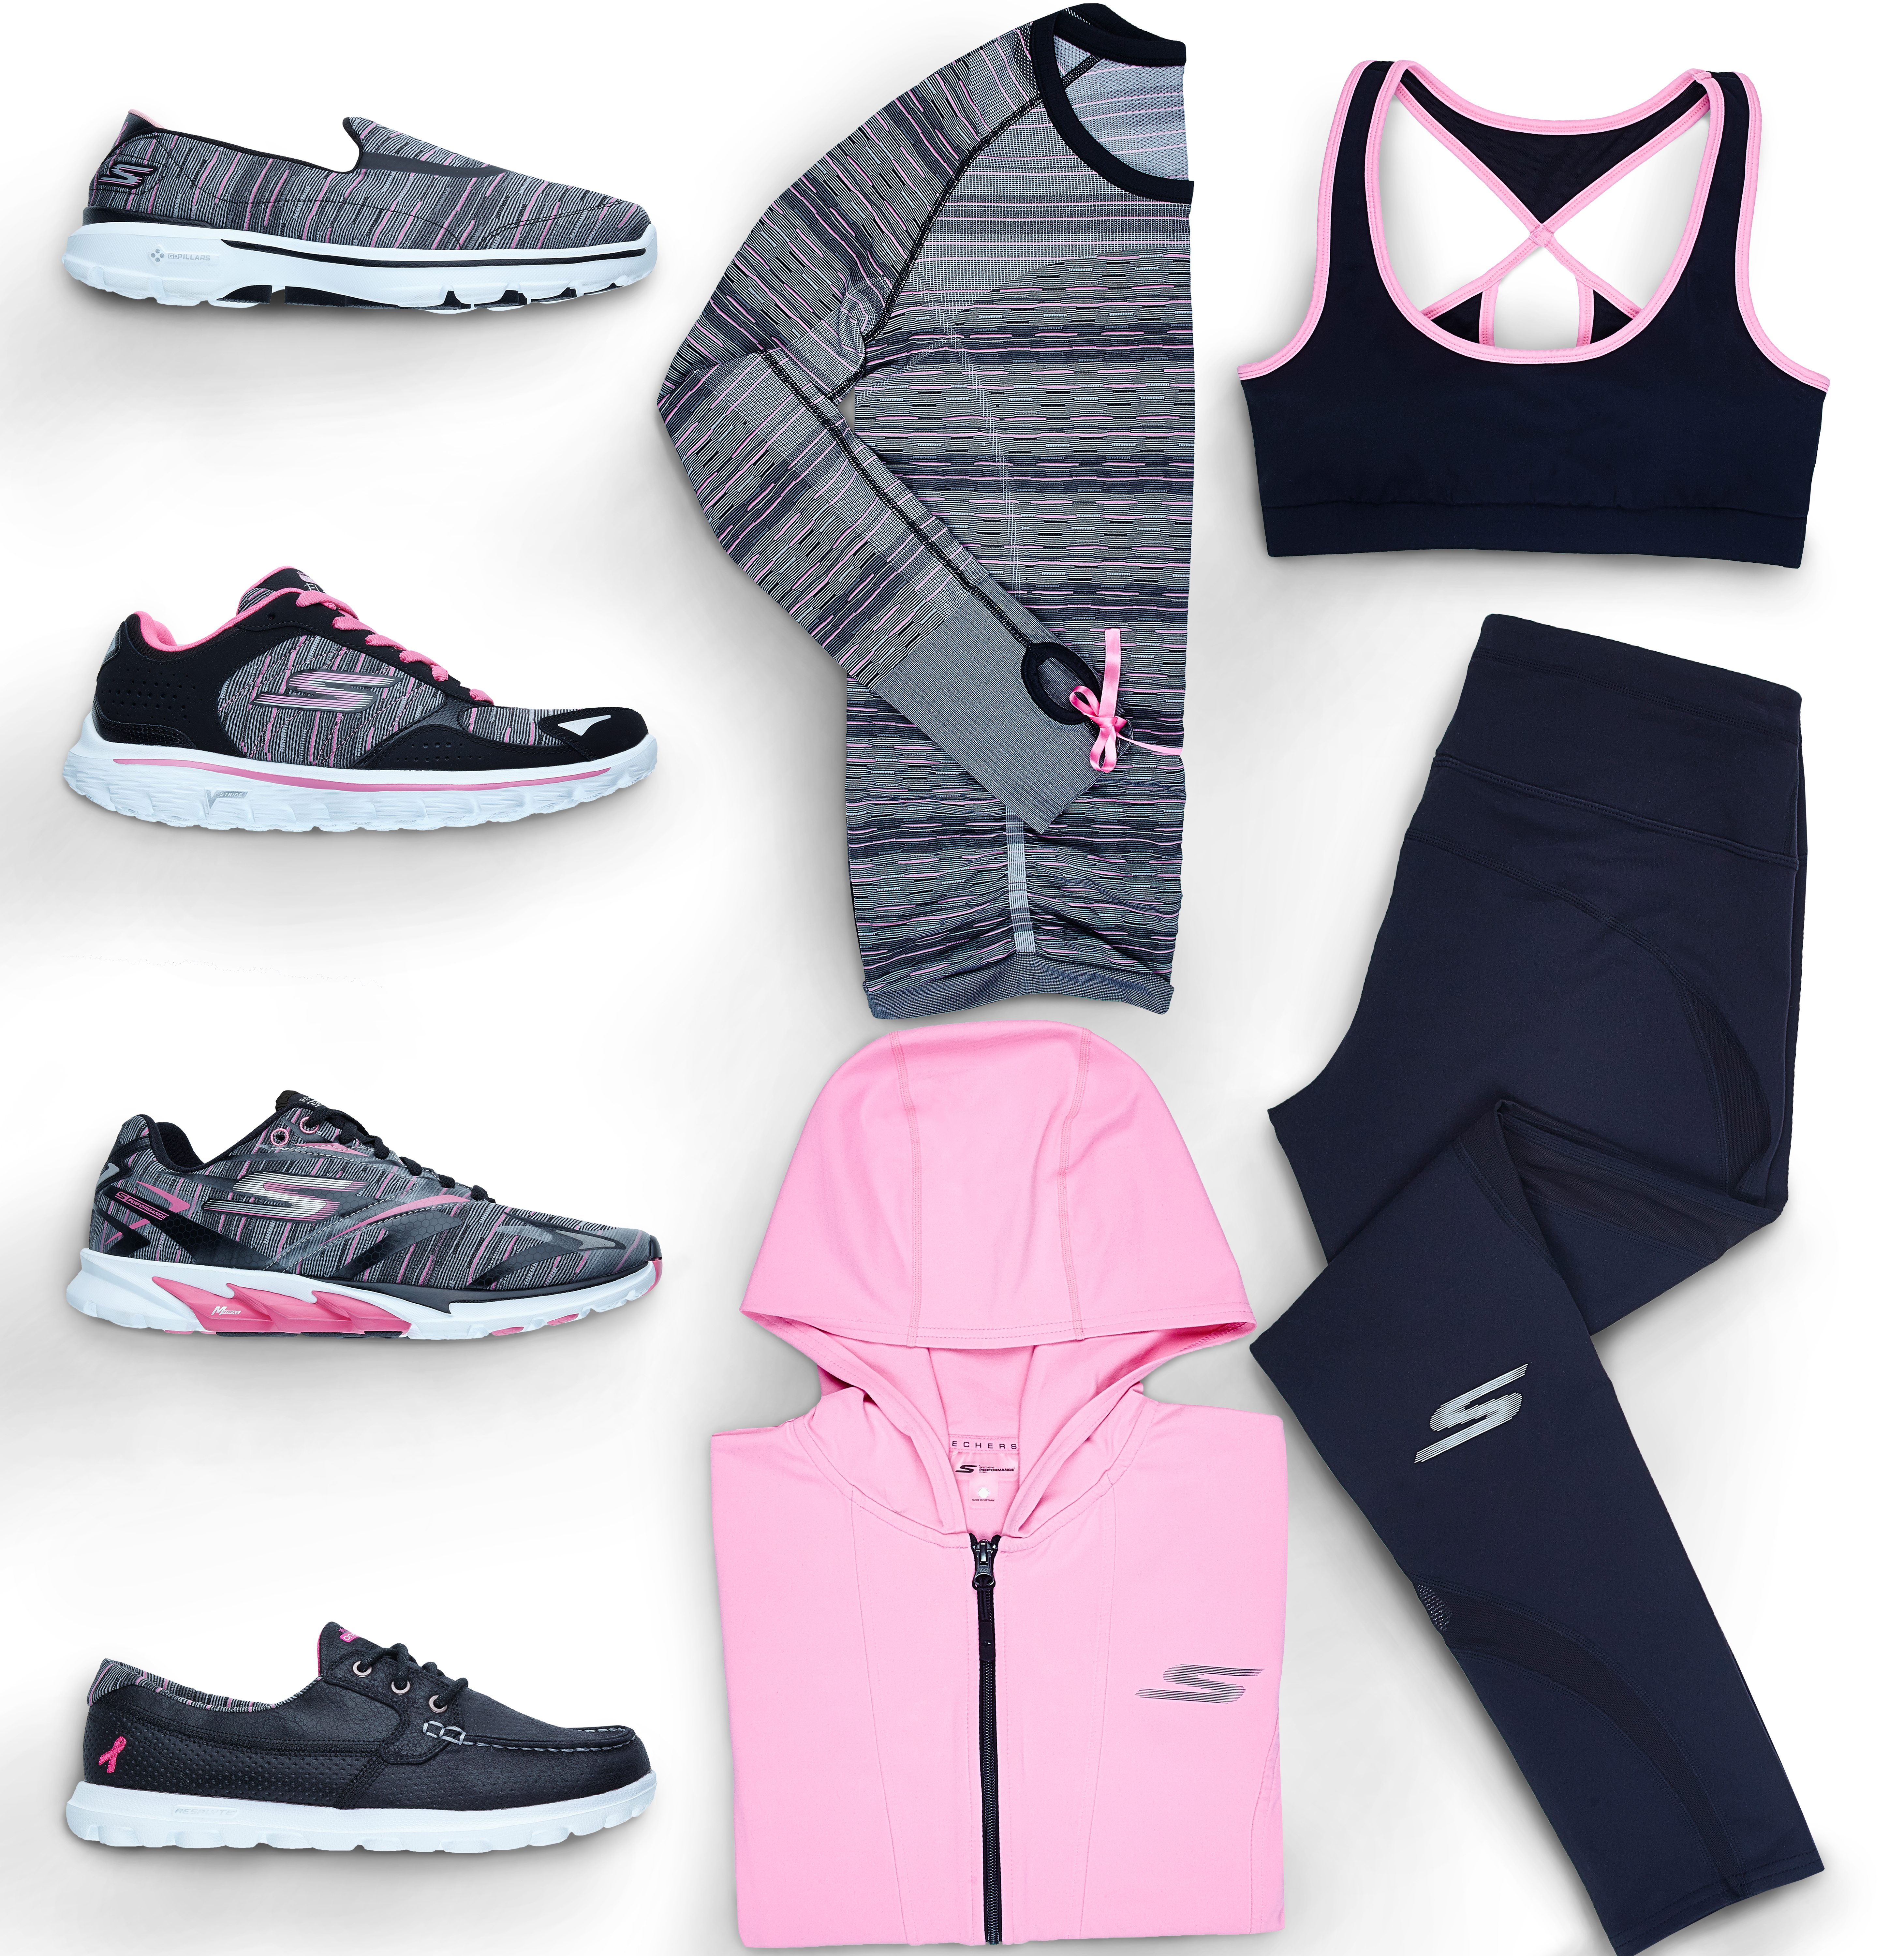 9954106f751 Skechers Performance Partners for a Second Year with American Cancer  Society to Support the Fight against Breast Cancer | Business Wire